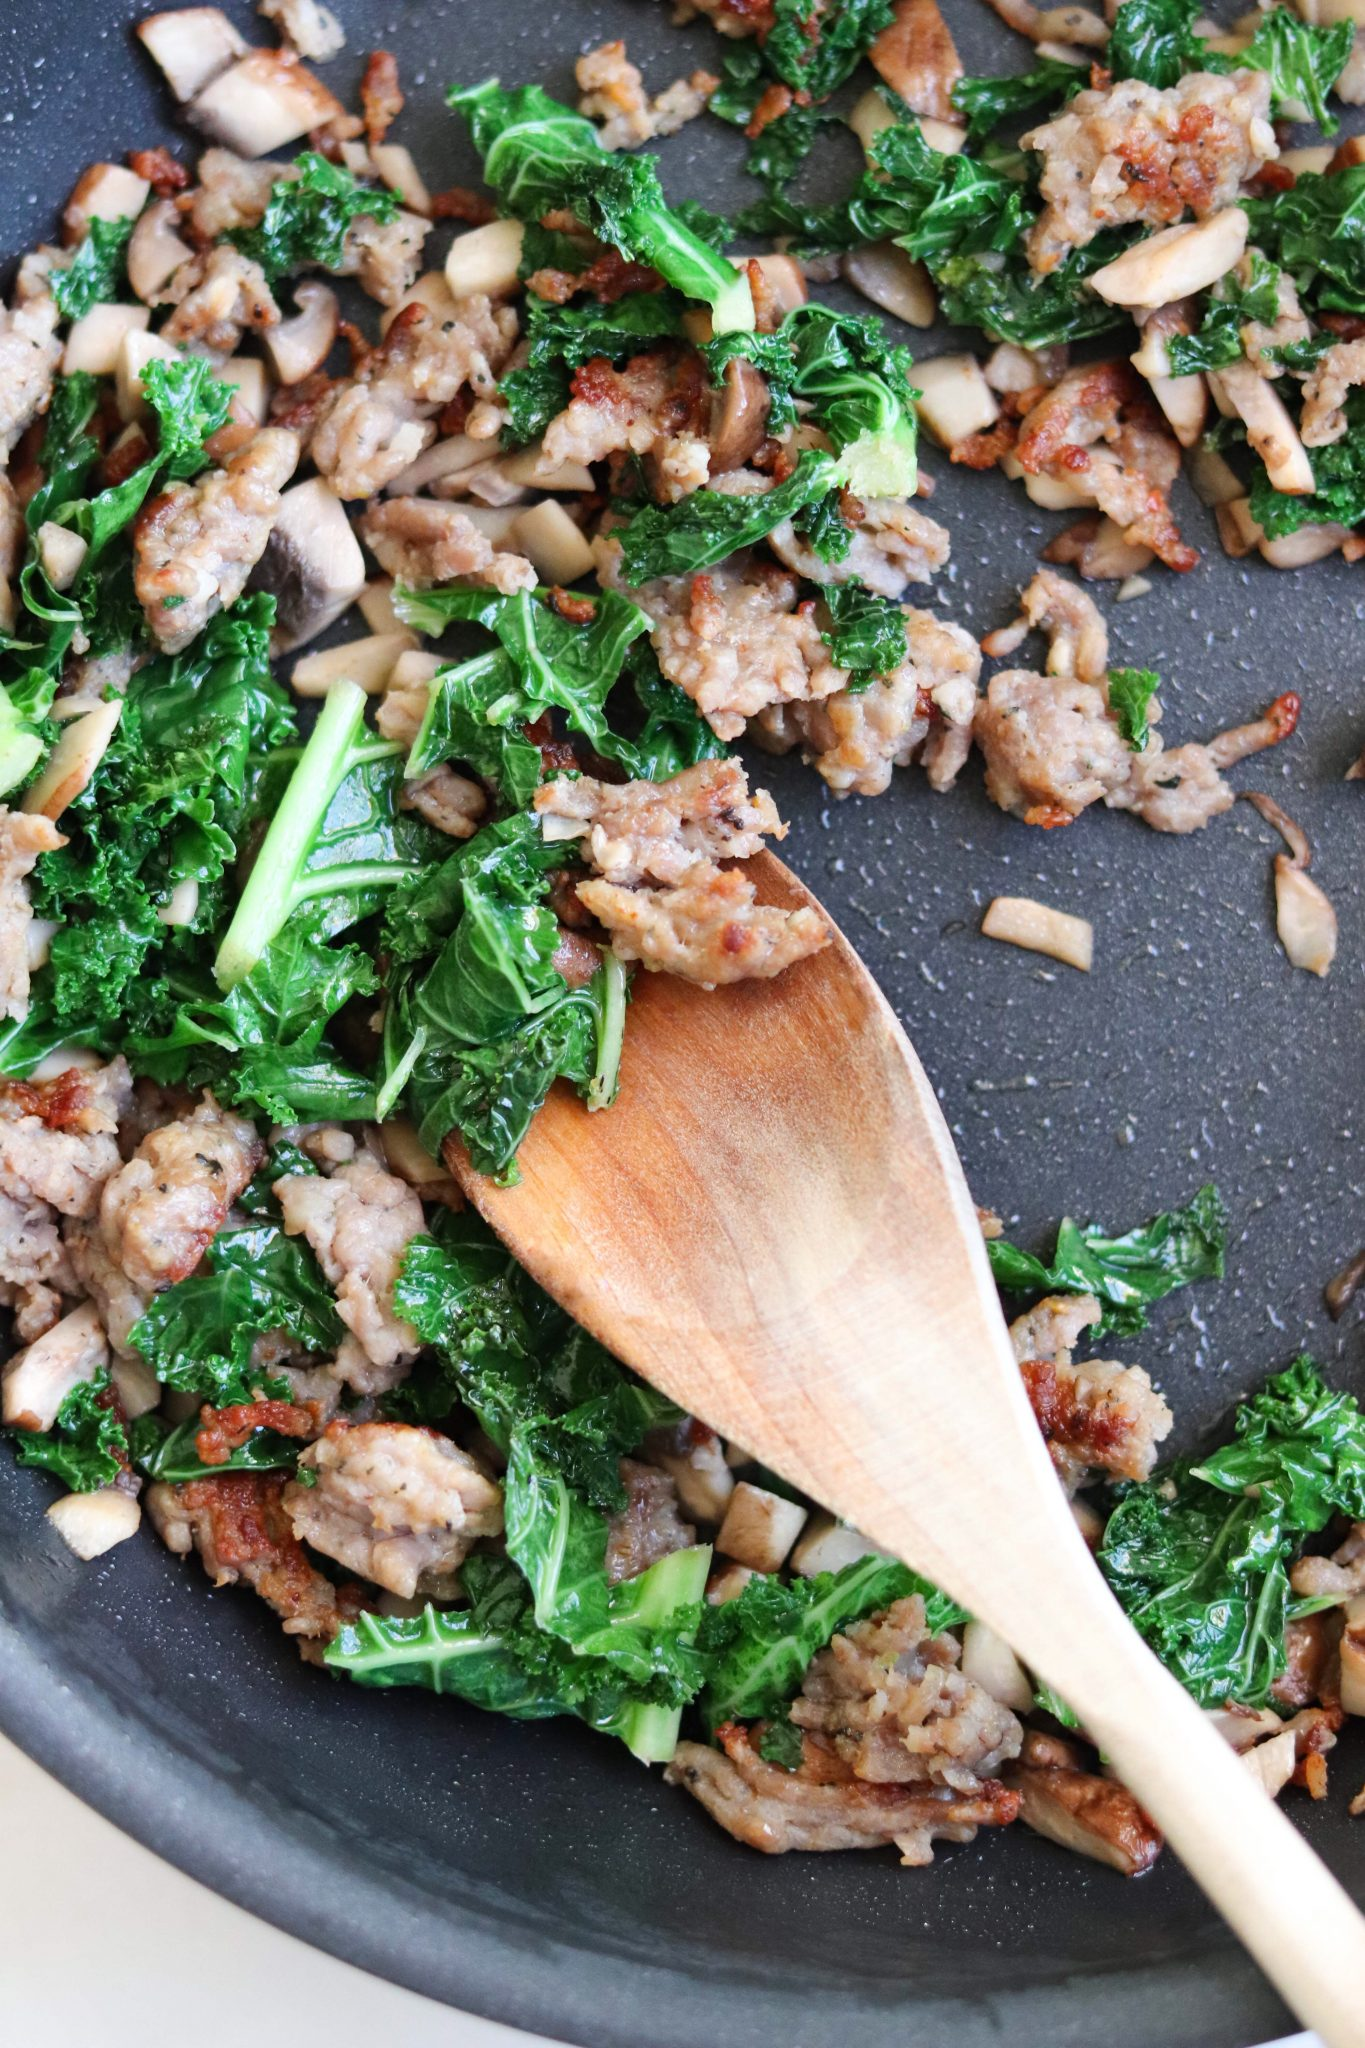 An easy Whole30 dinner - A skillet of sautéed mushrooms and kale mixed with savory sausage is ready to be stuffed into roasted acorn squash.